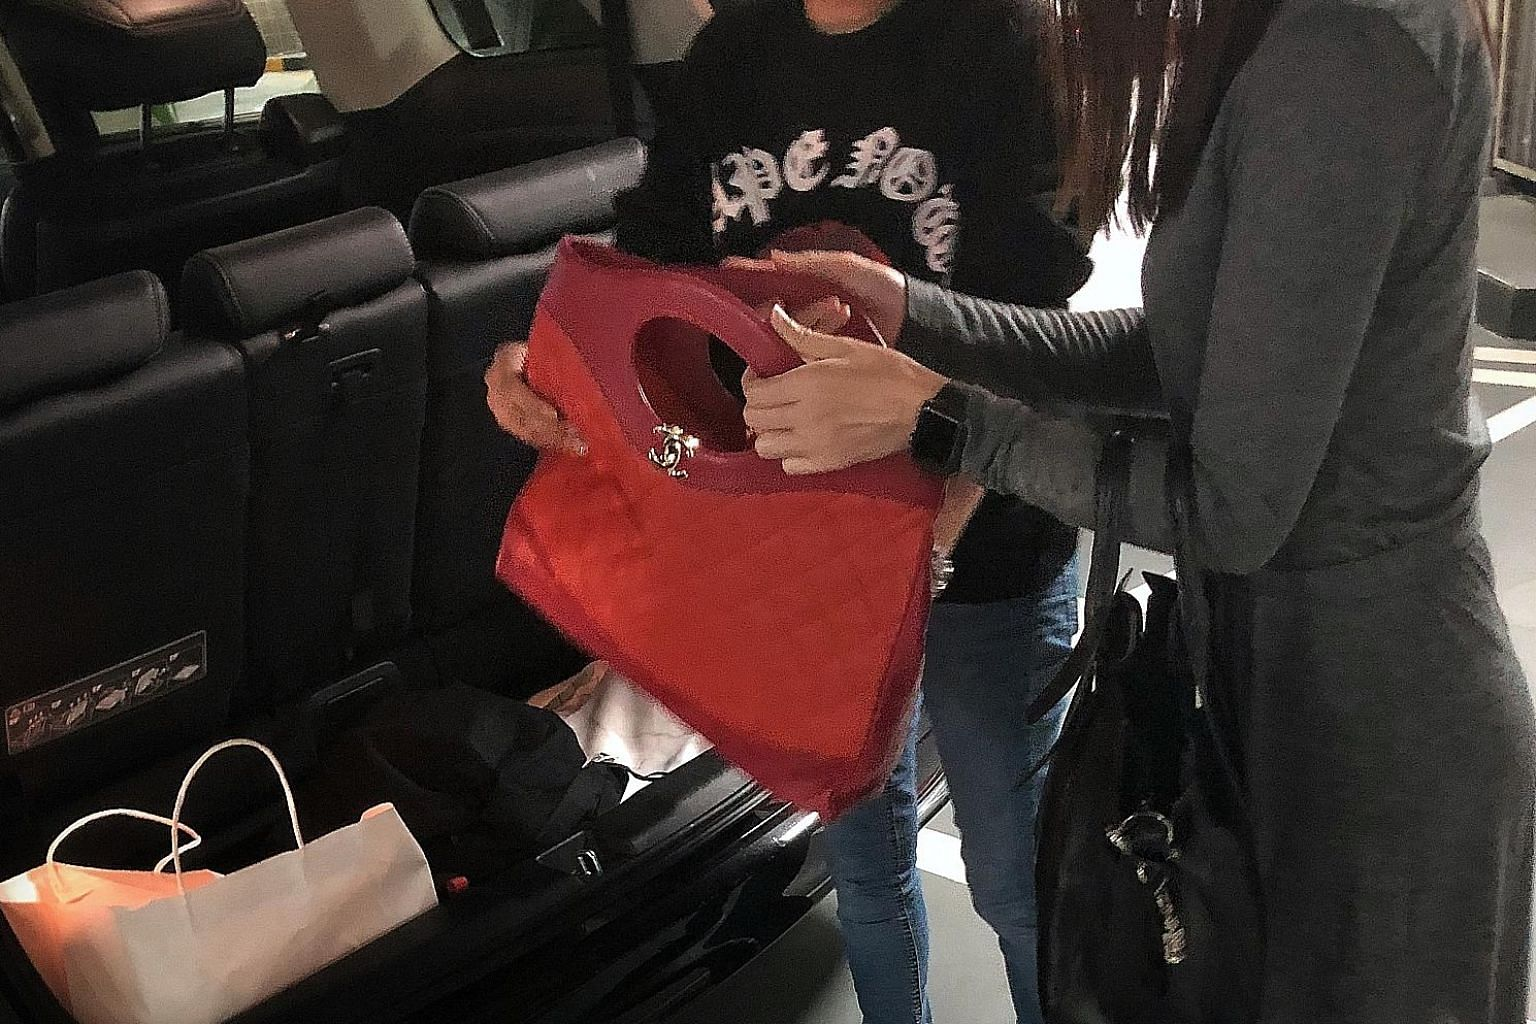 """The Sunday Times reporter being shown a """"Chanel 31"""" shopping bag for Fall/Winter 2018, which is sold for more than $5,000 at the boutique. But this counterfeit bag costs only $750. The touch and scent of the leather was like the real thing."""